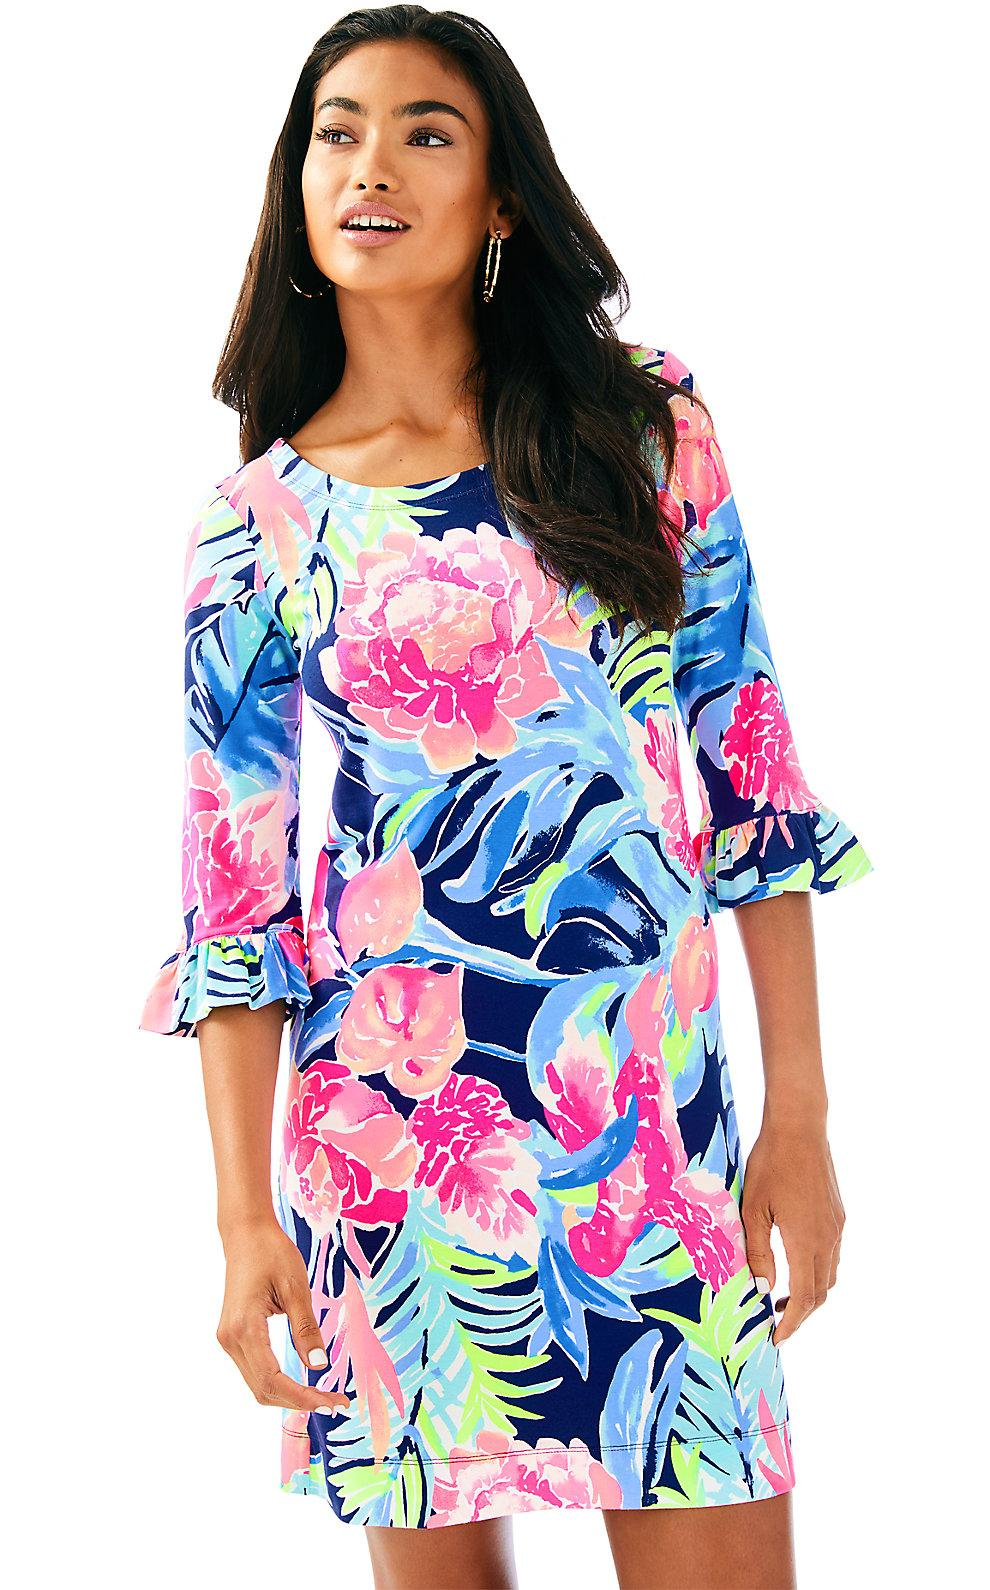 Lilly Pulitzer Upf 50+ Sophie Ruffle Dress In High Tide Navy Tropicolada